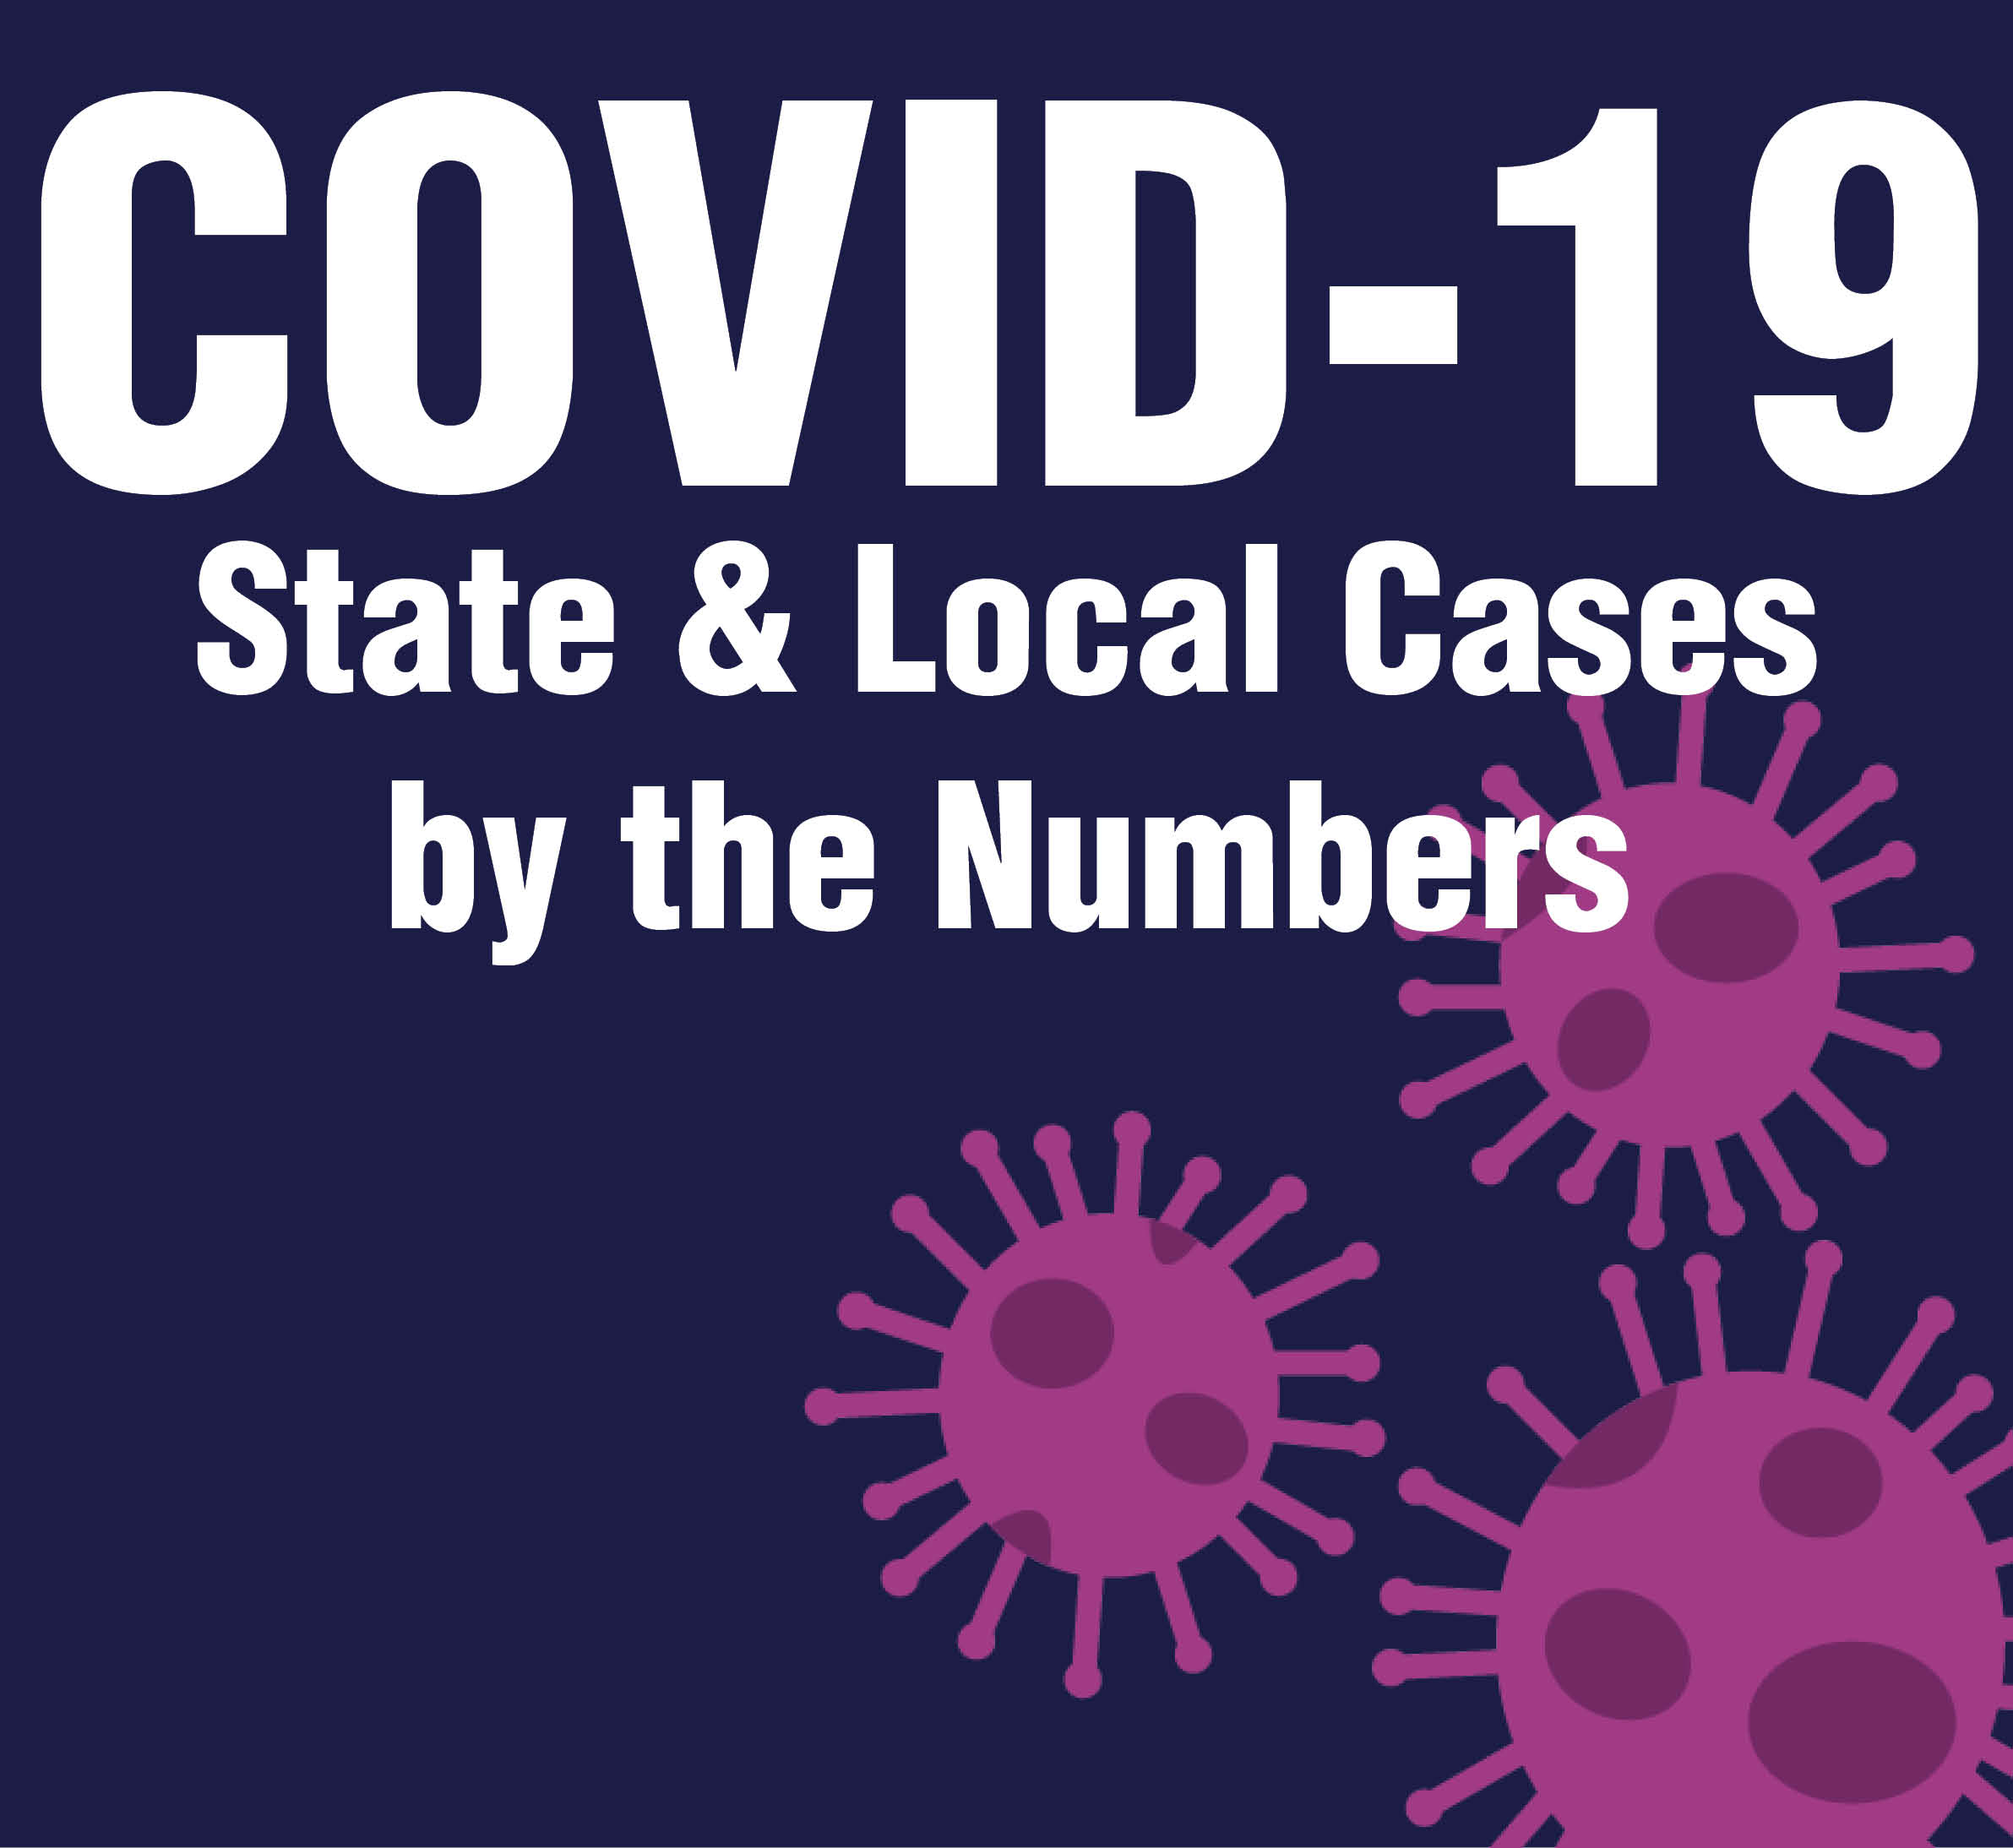 COVID-19 Case Numbers